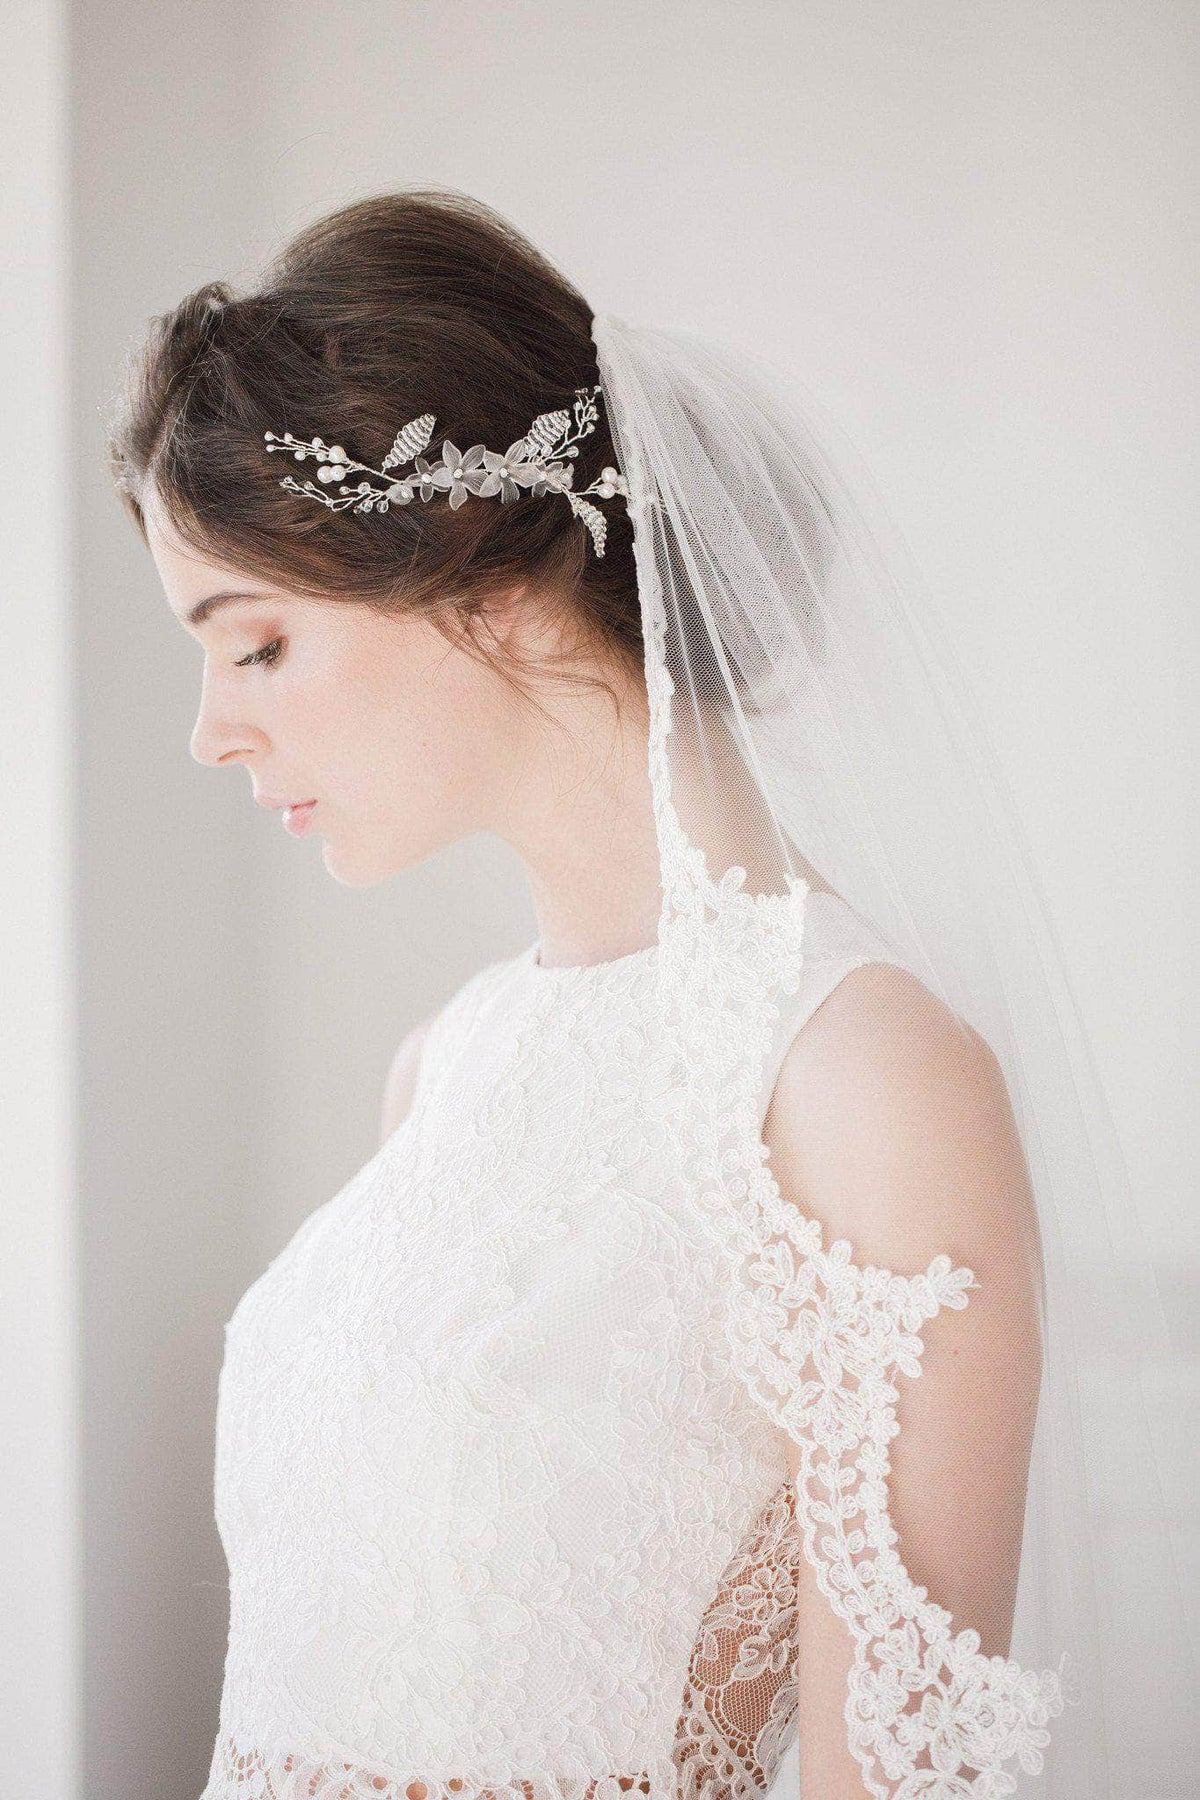 Wedding Veil Full lace edged ivory wedding veil - 'Luisa'